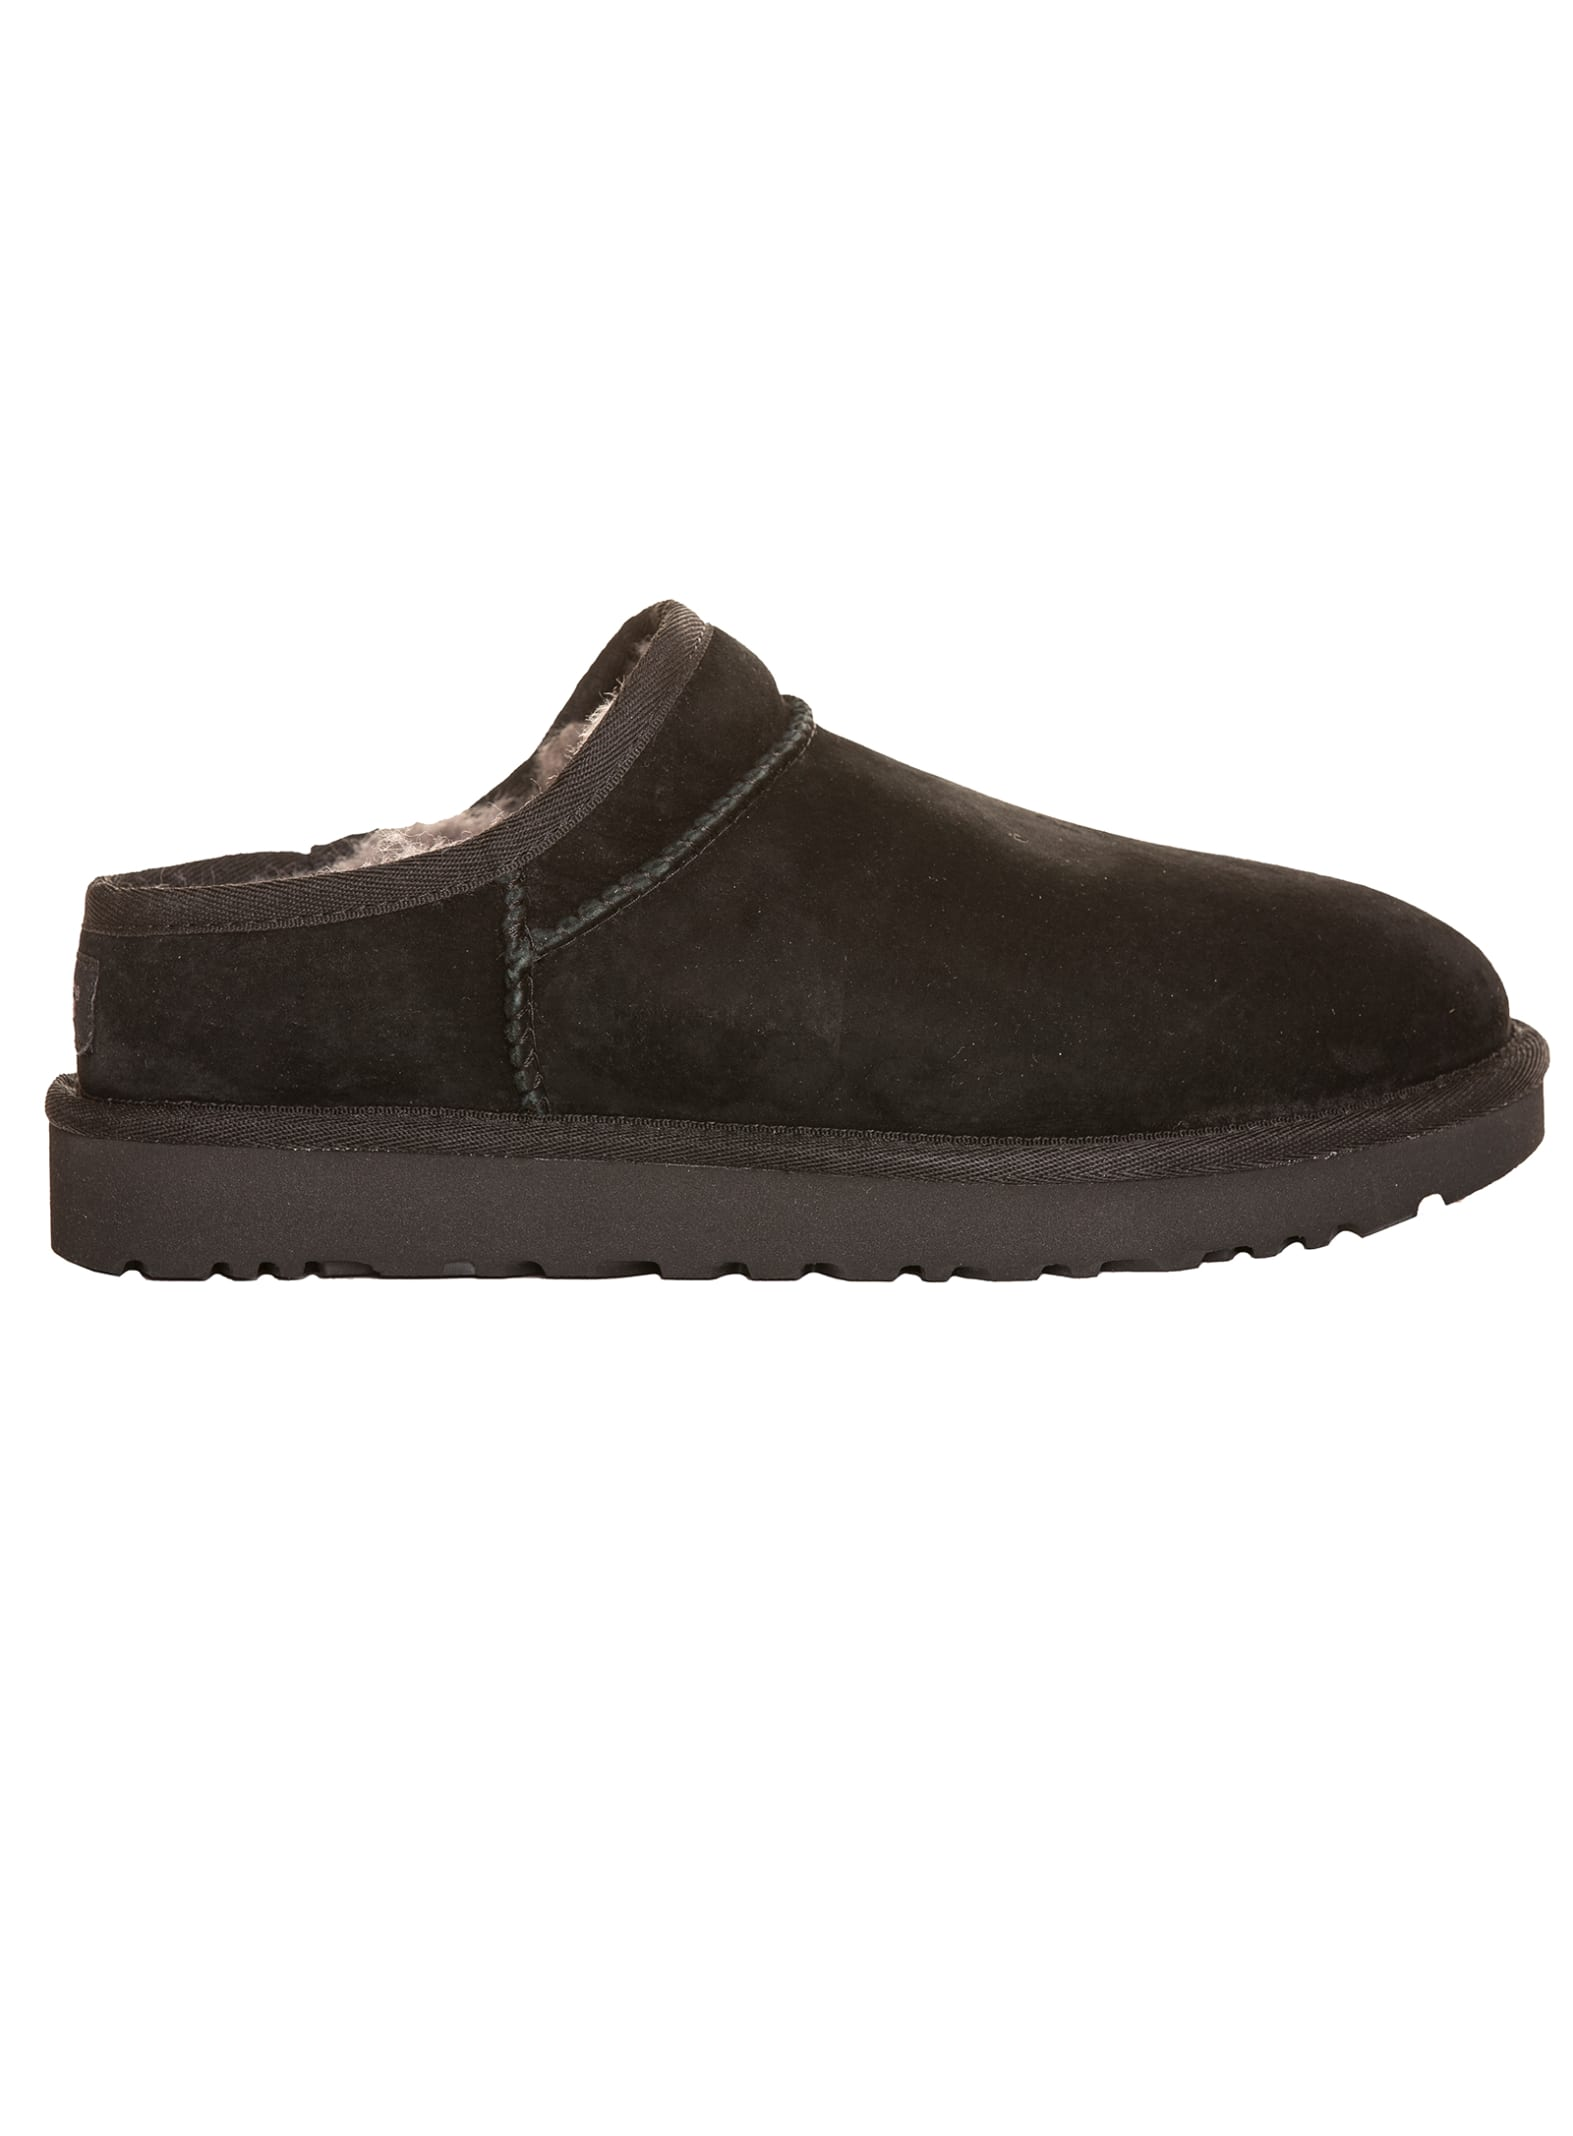 0db13a39a UGG Ugg Classic Slippers - NERO - 10738272 | italist